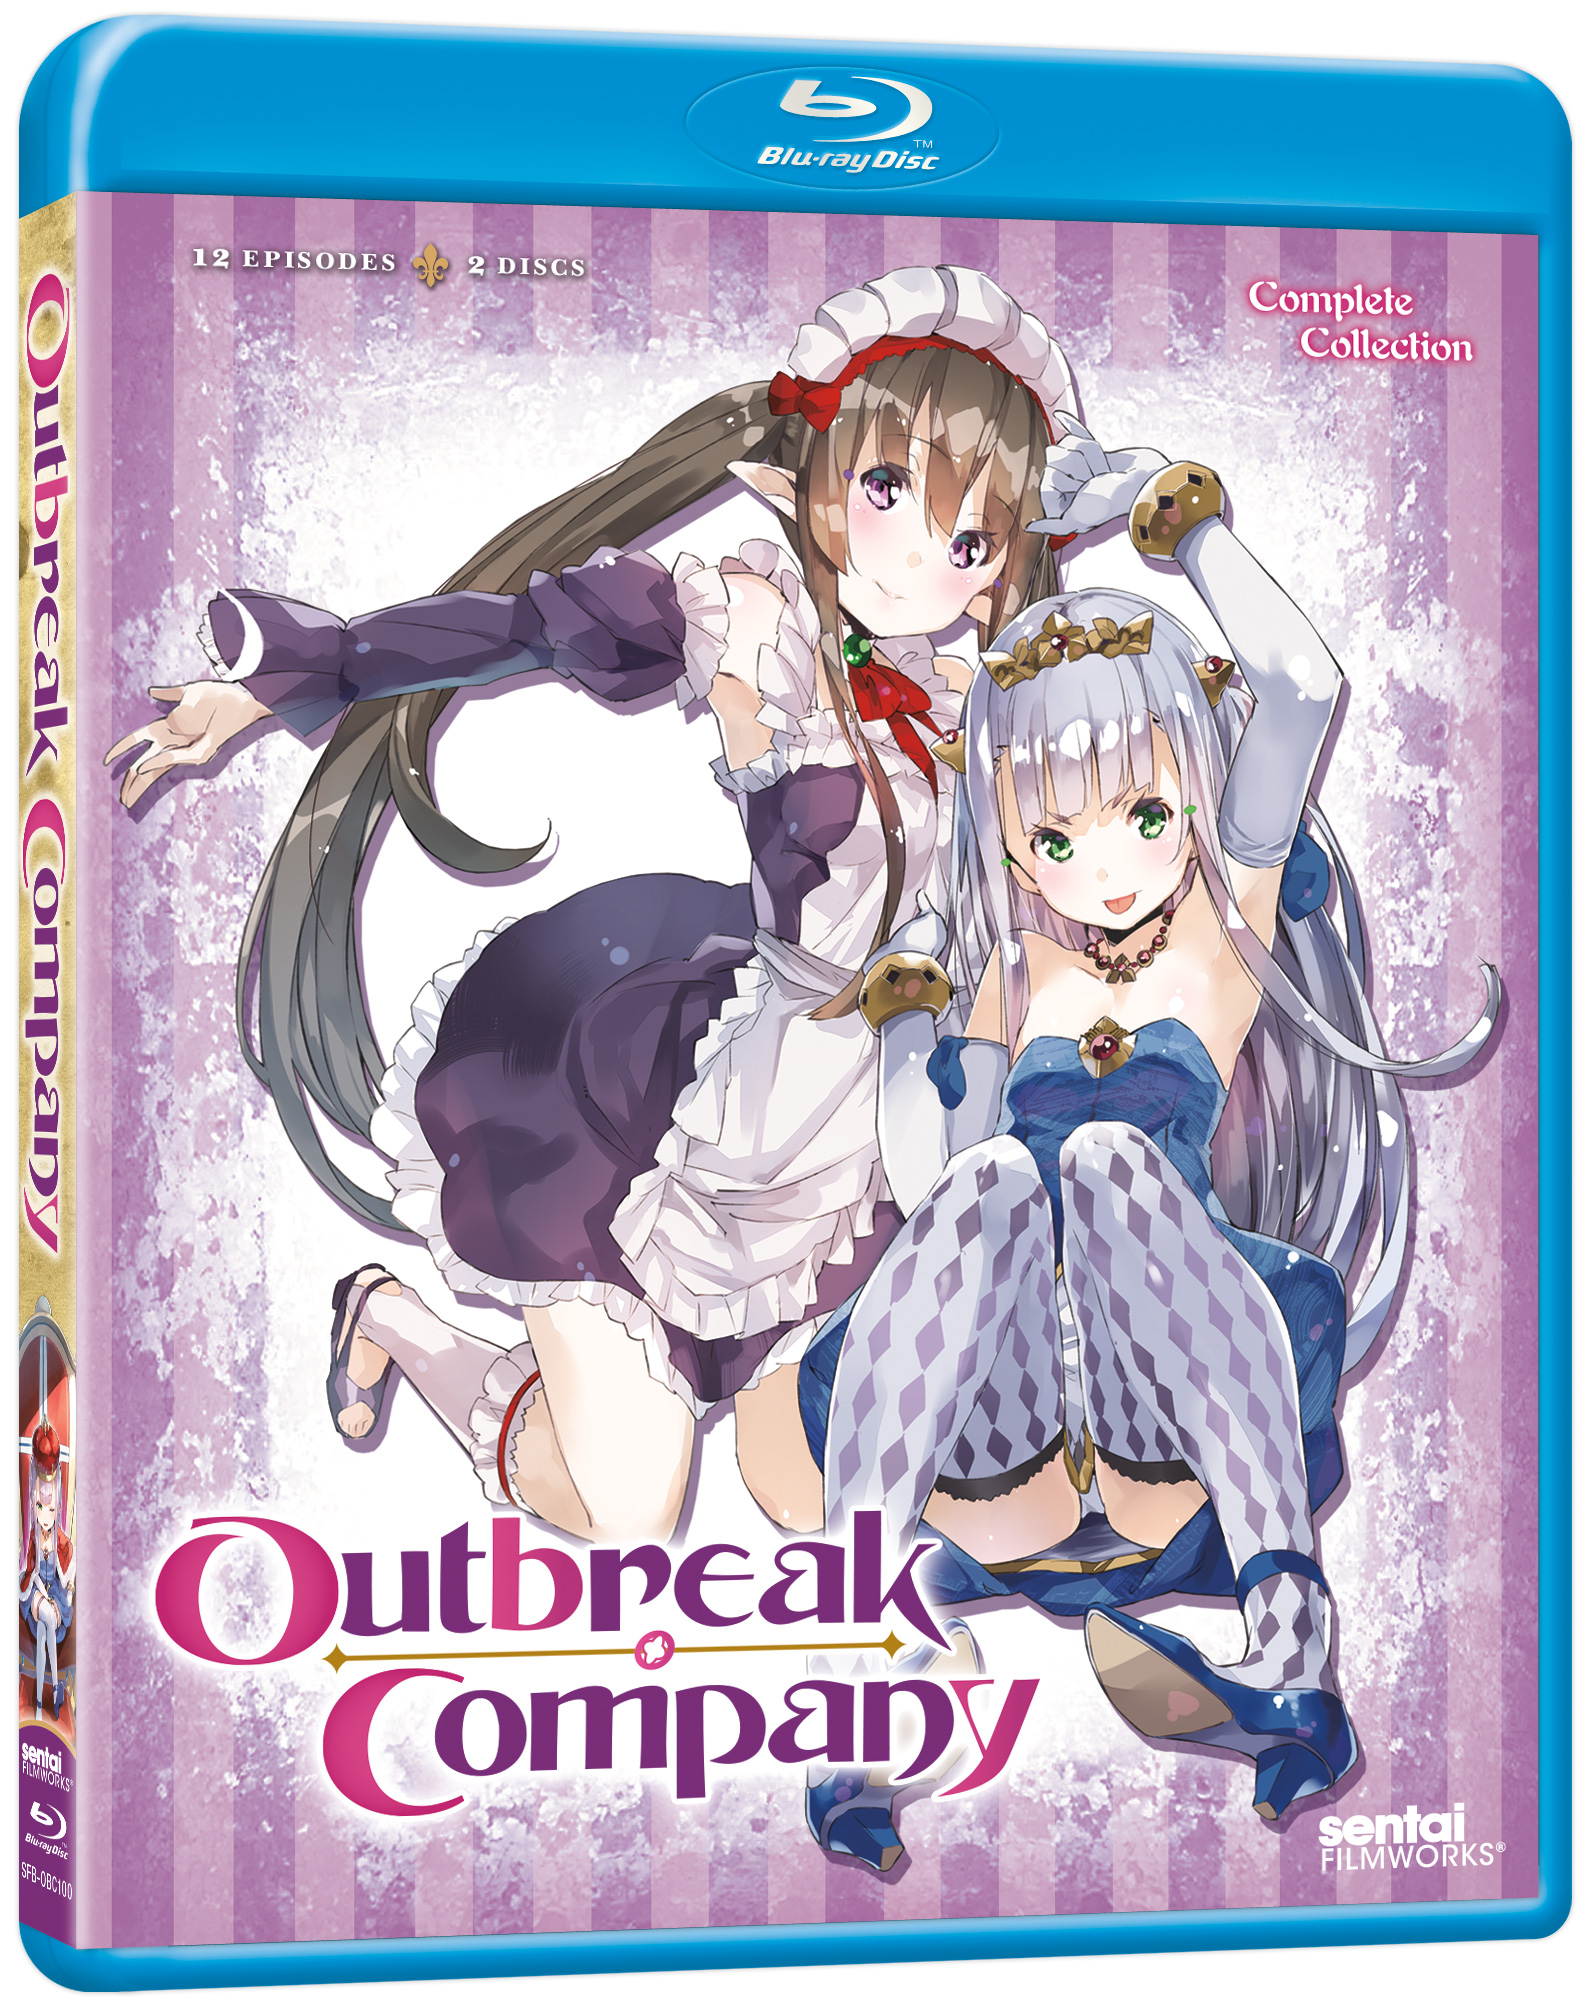 A picture of the Outbreak Company Blu-ray.